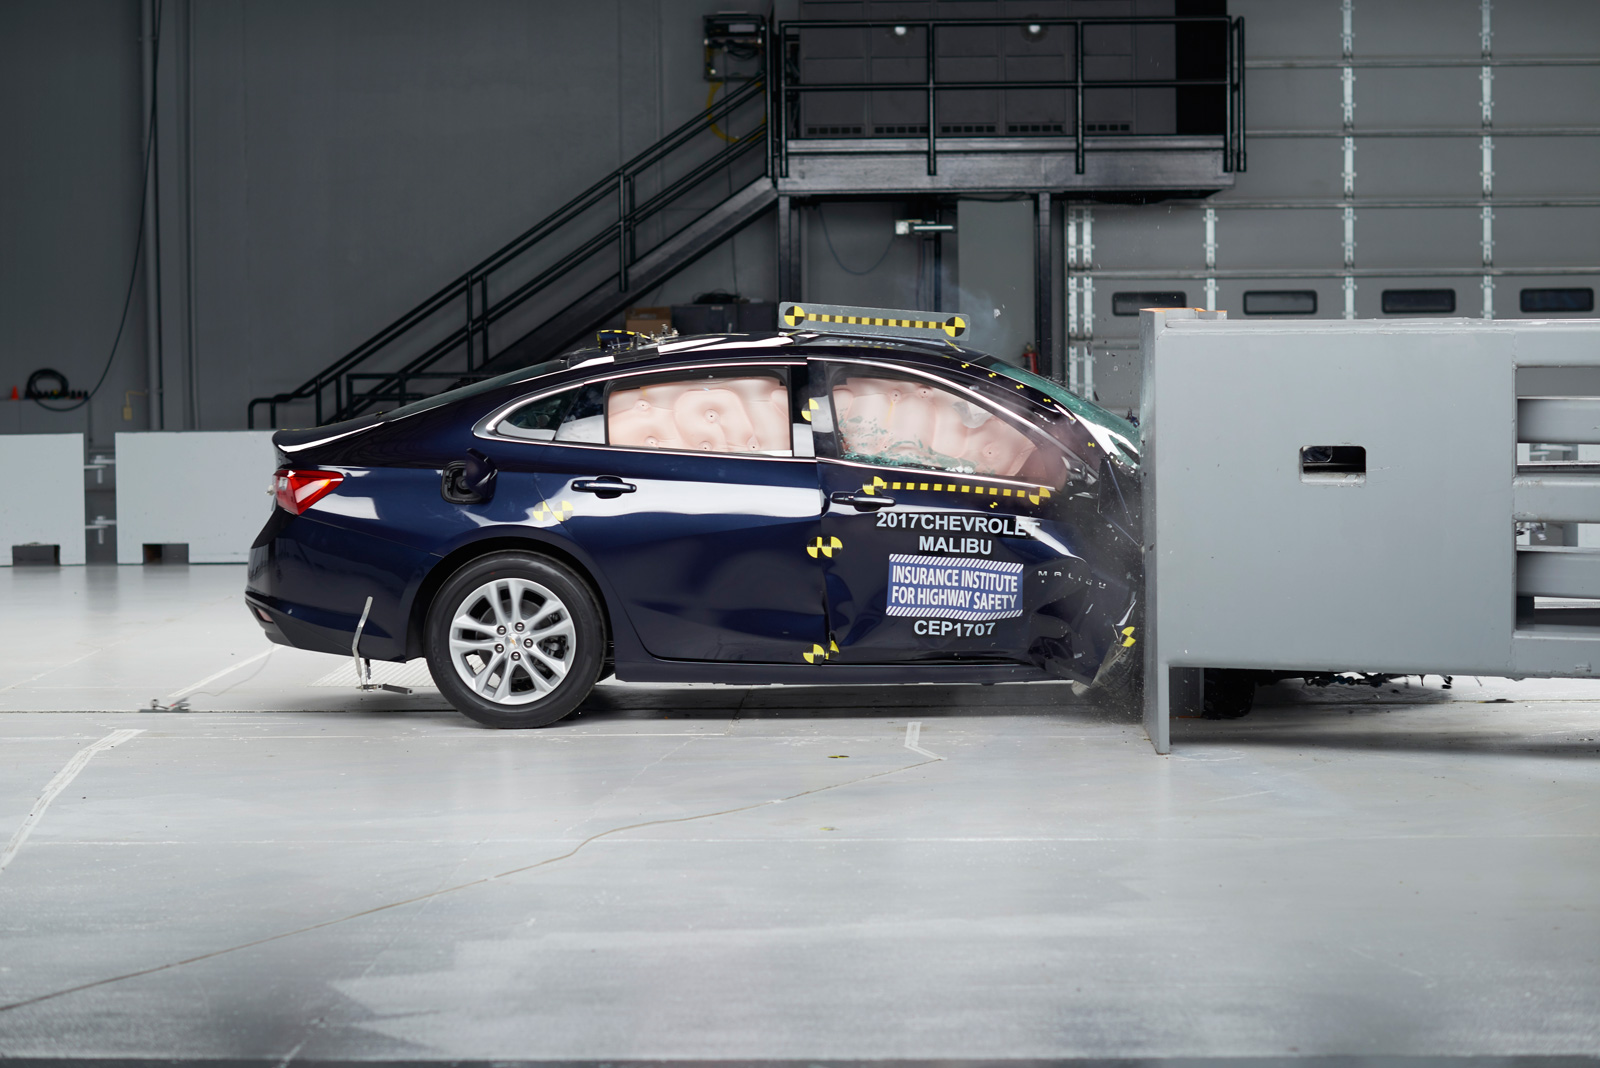 2017 Chevrolet Malibu Iihs Crash Test